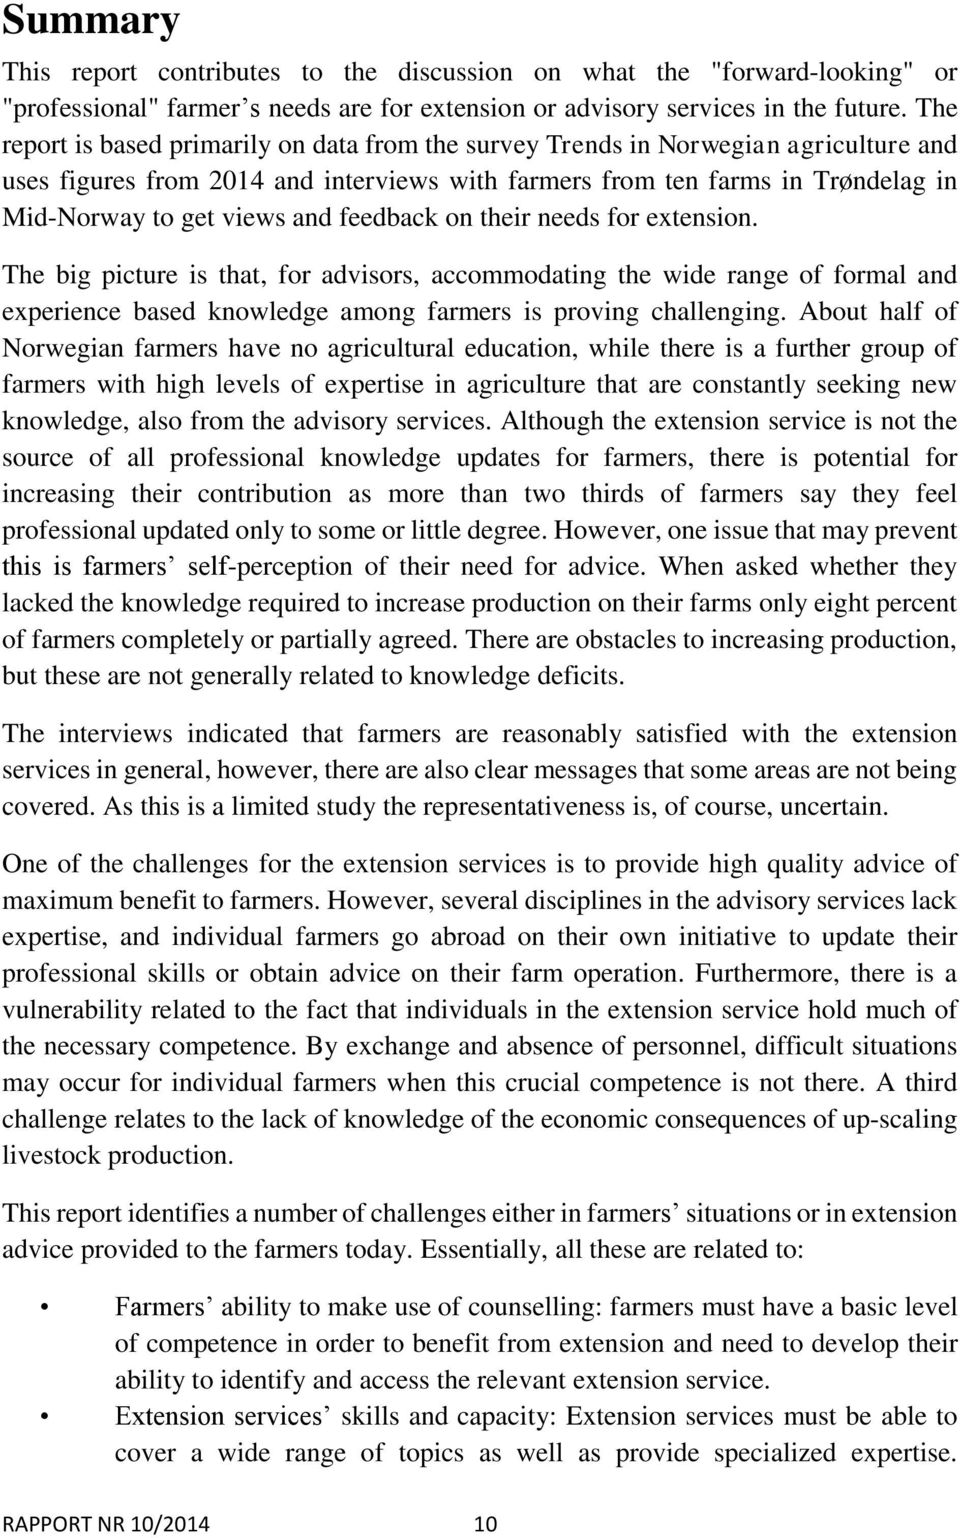 feedback on their needs for extension. The big picture is that, for advisors, accommodating the wide range of formal and experience based knowledge among farmers is proving challenging.